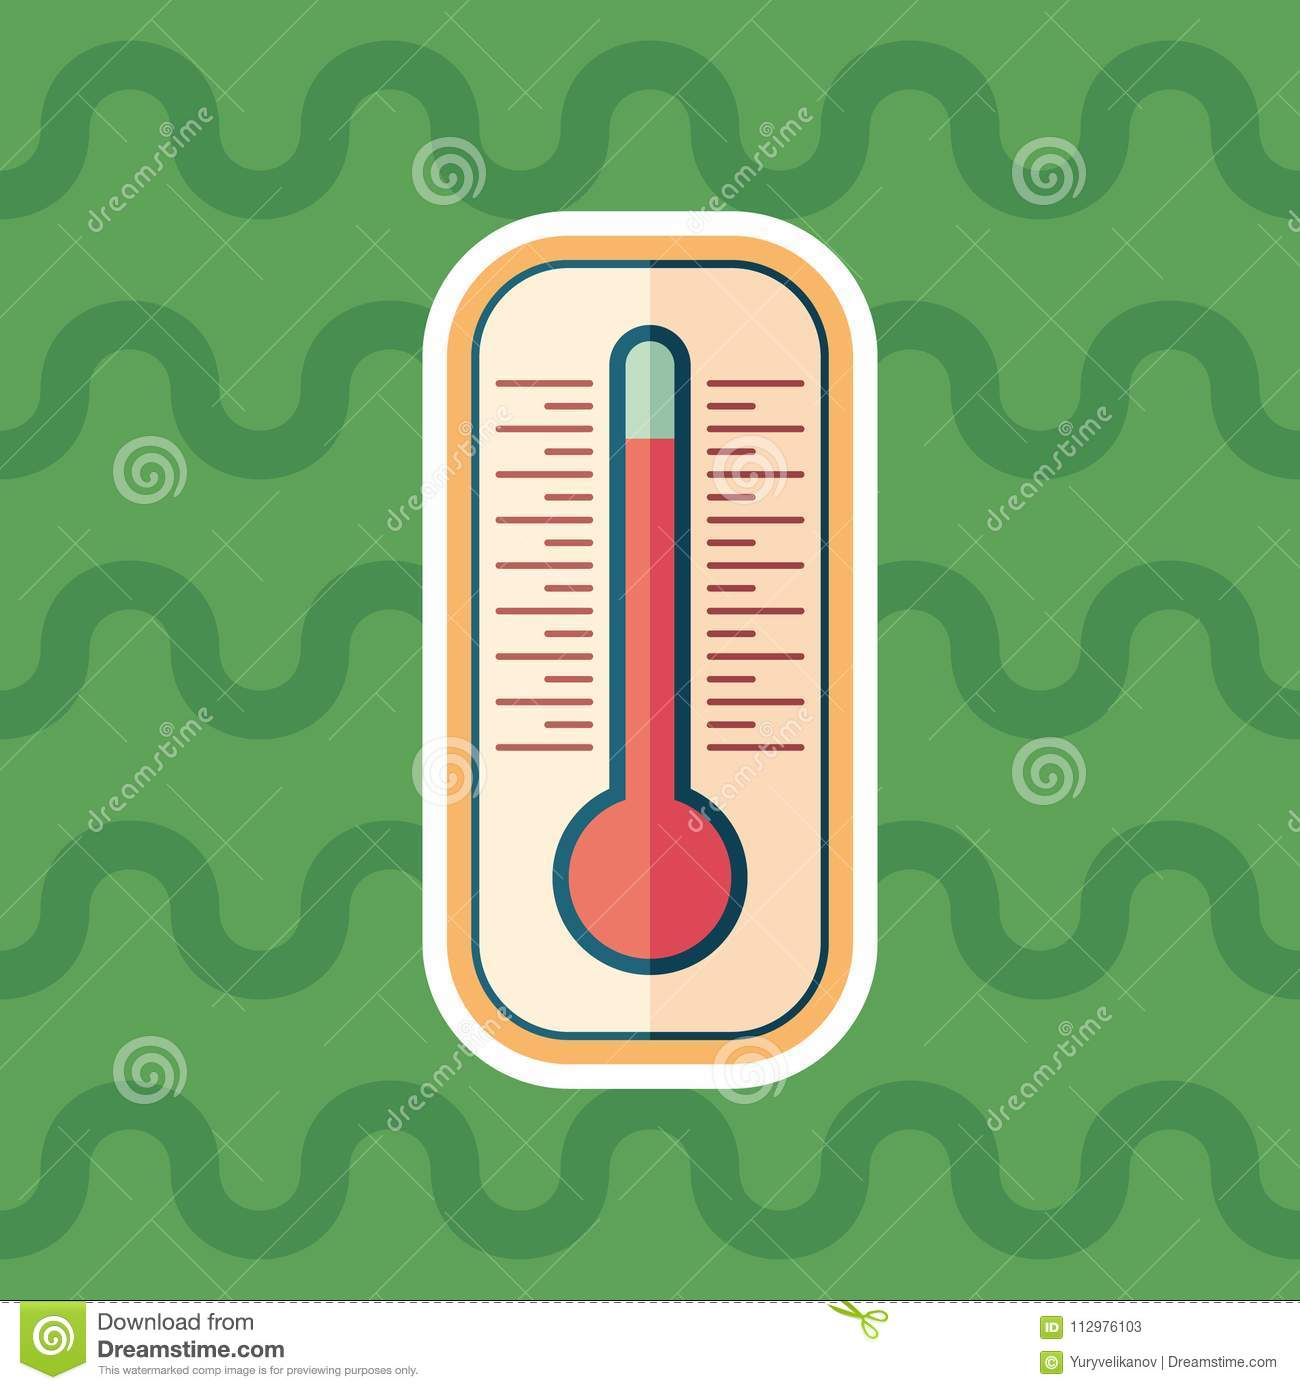 Thermometer sticker flat icon with color background.